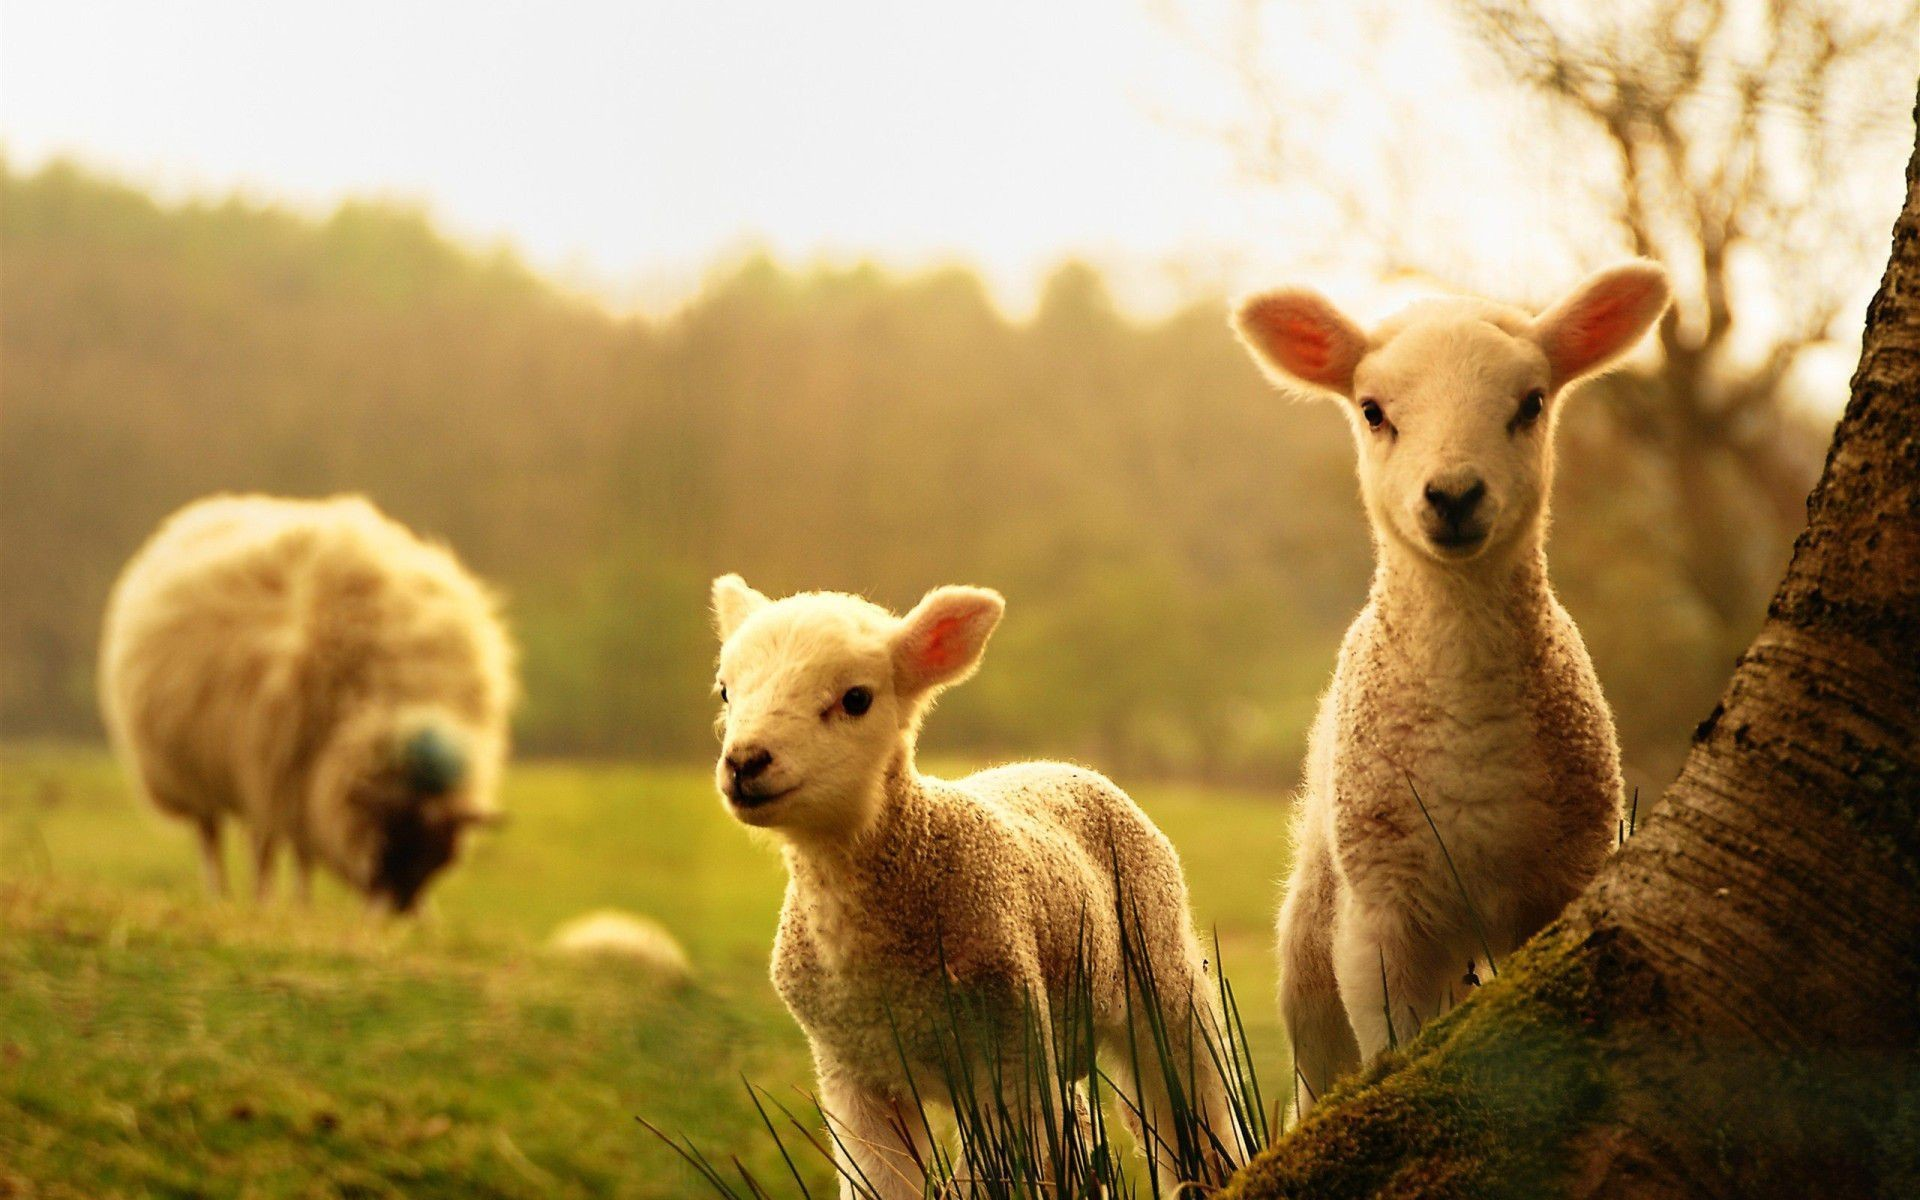 farm animals wallpaper (58+ images)